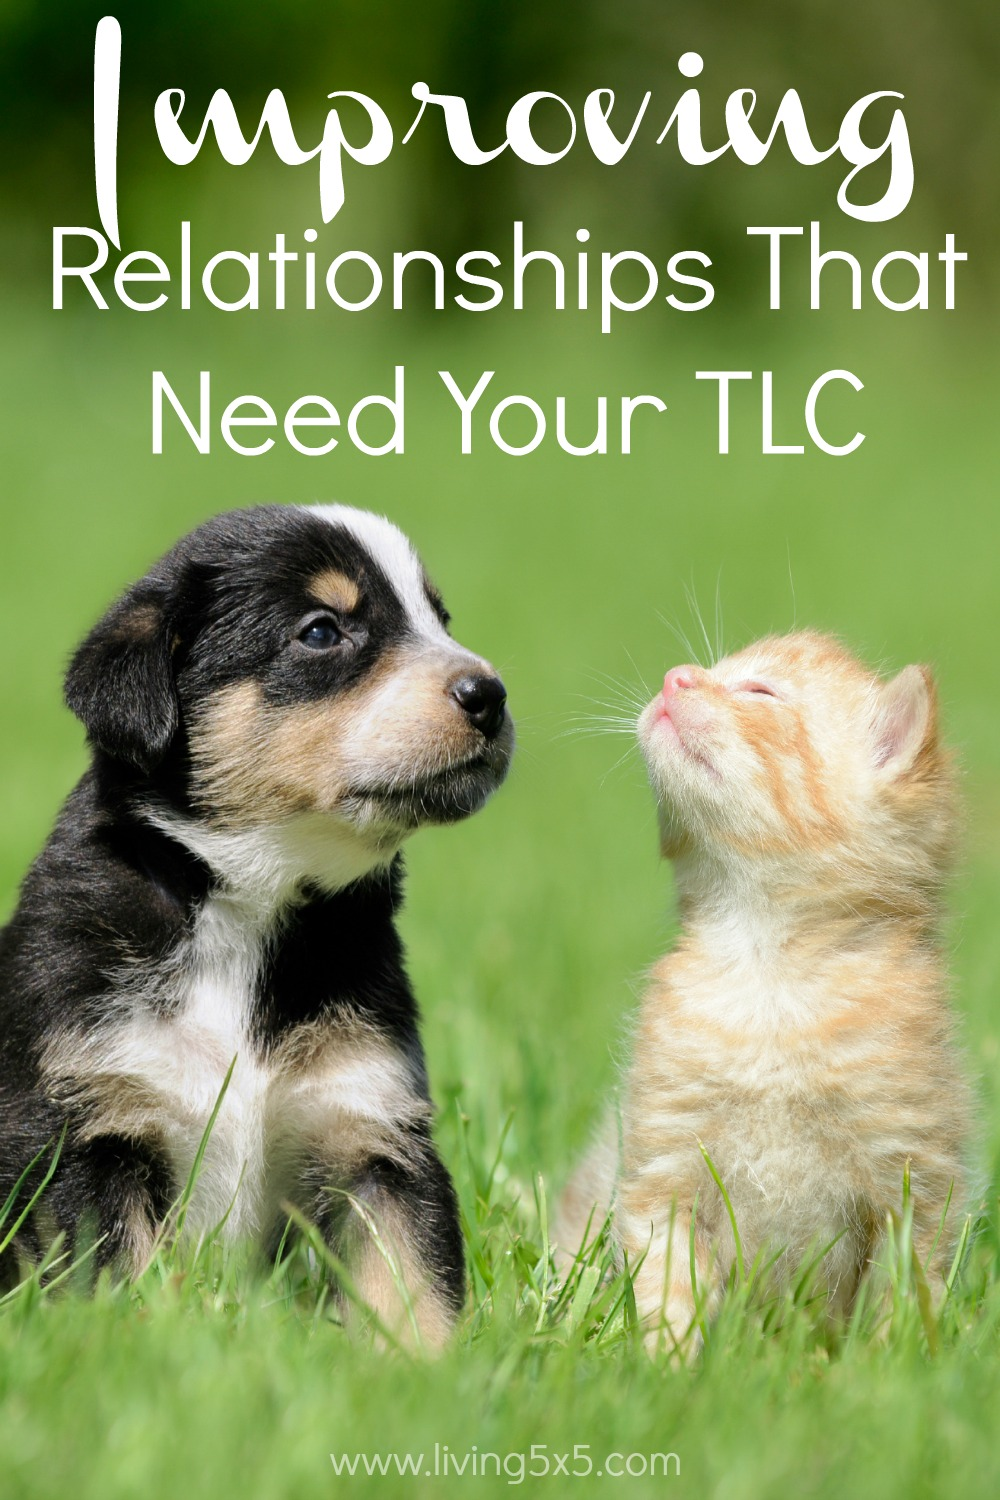 Understand the first steps in your problems and start Improving Relationships That Need Your TLC.